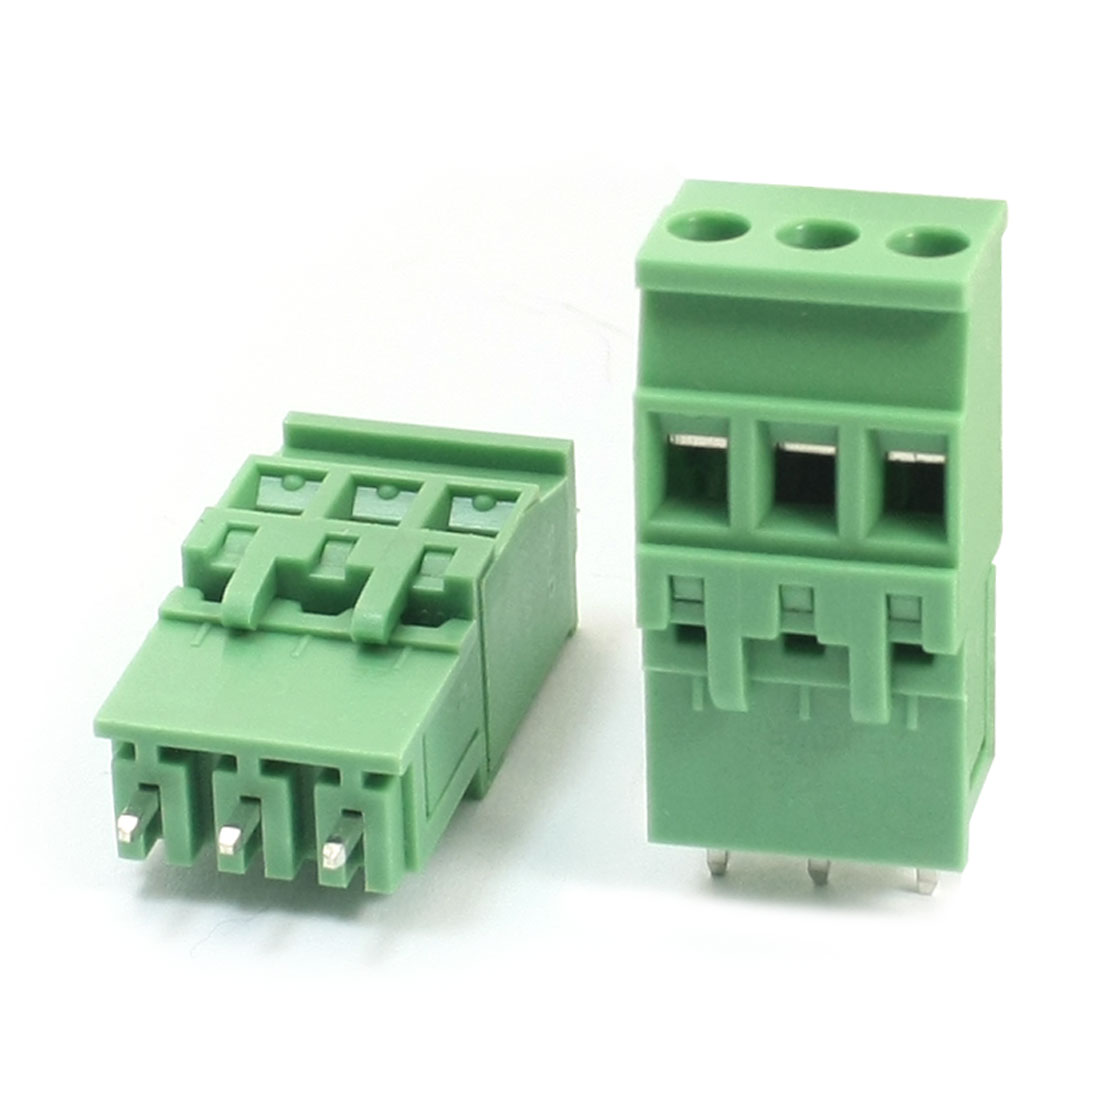 2 Pcs 5.08mm Pitch Through Hole Mount Pluggable Green PCB Screw Terminal Barrier Block Connector For 14-26AWG Wire